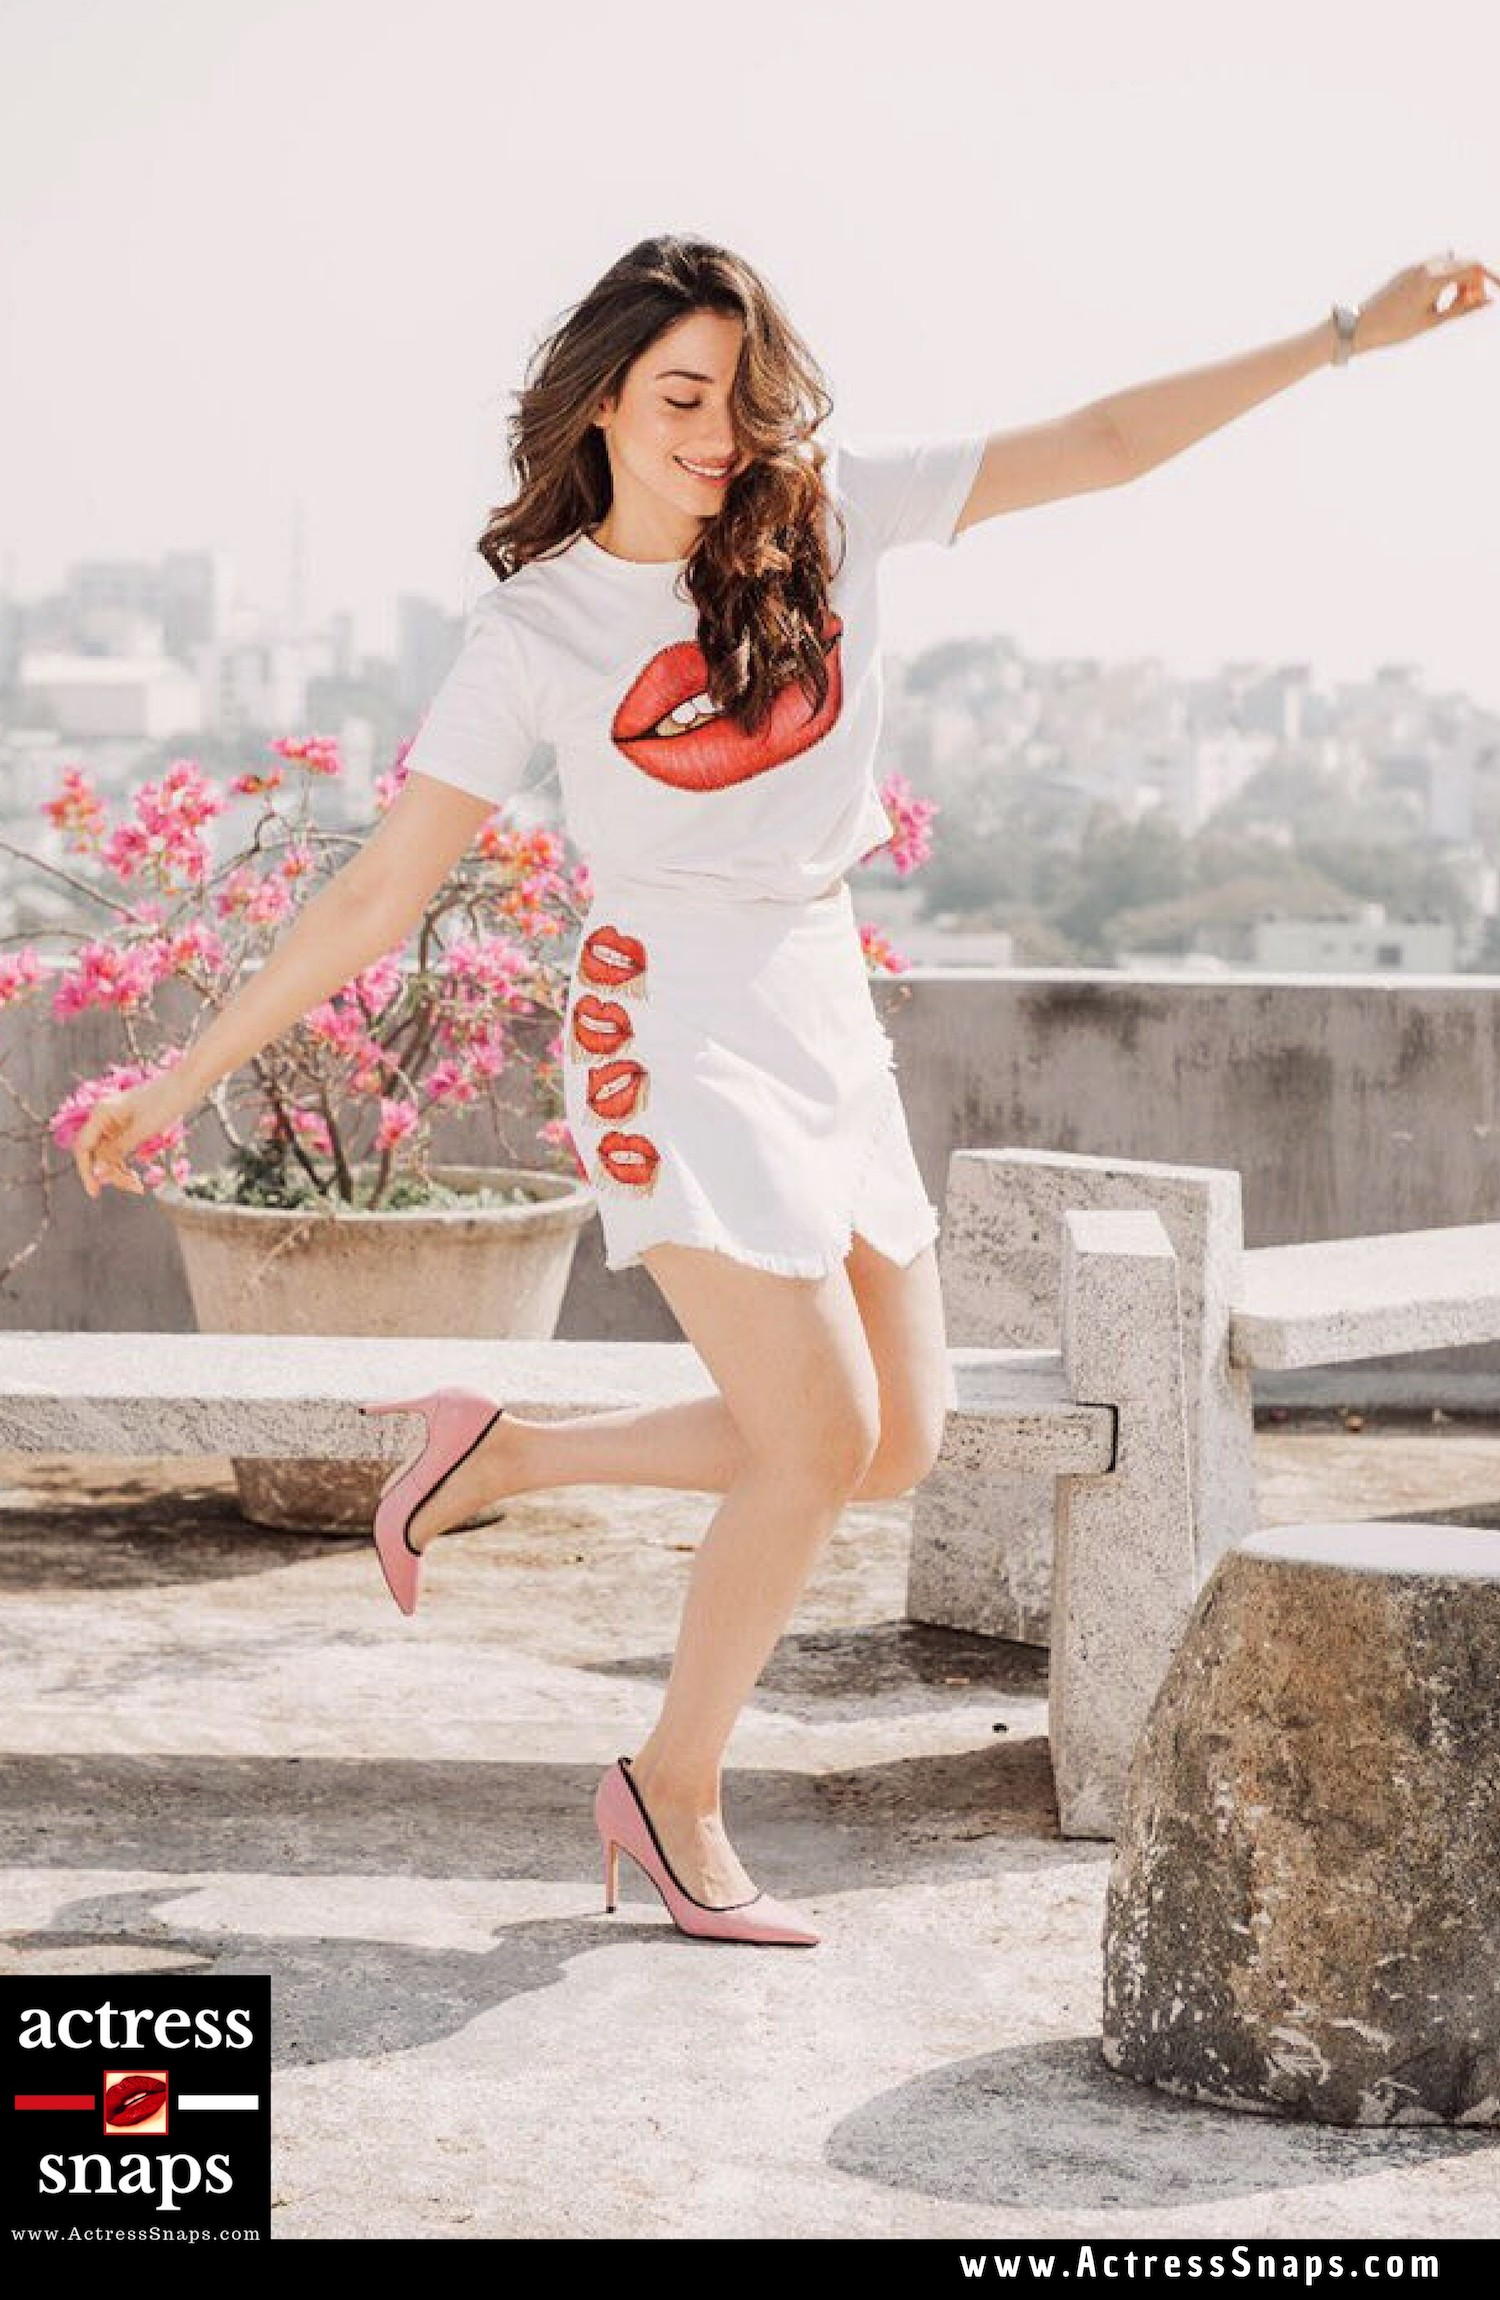 Tamanna Looking Cheerful in latest Photo Shoot - Sexy Actress Pictures | Hot Actress Pictures - ActressSnaps.com